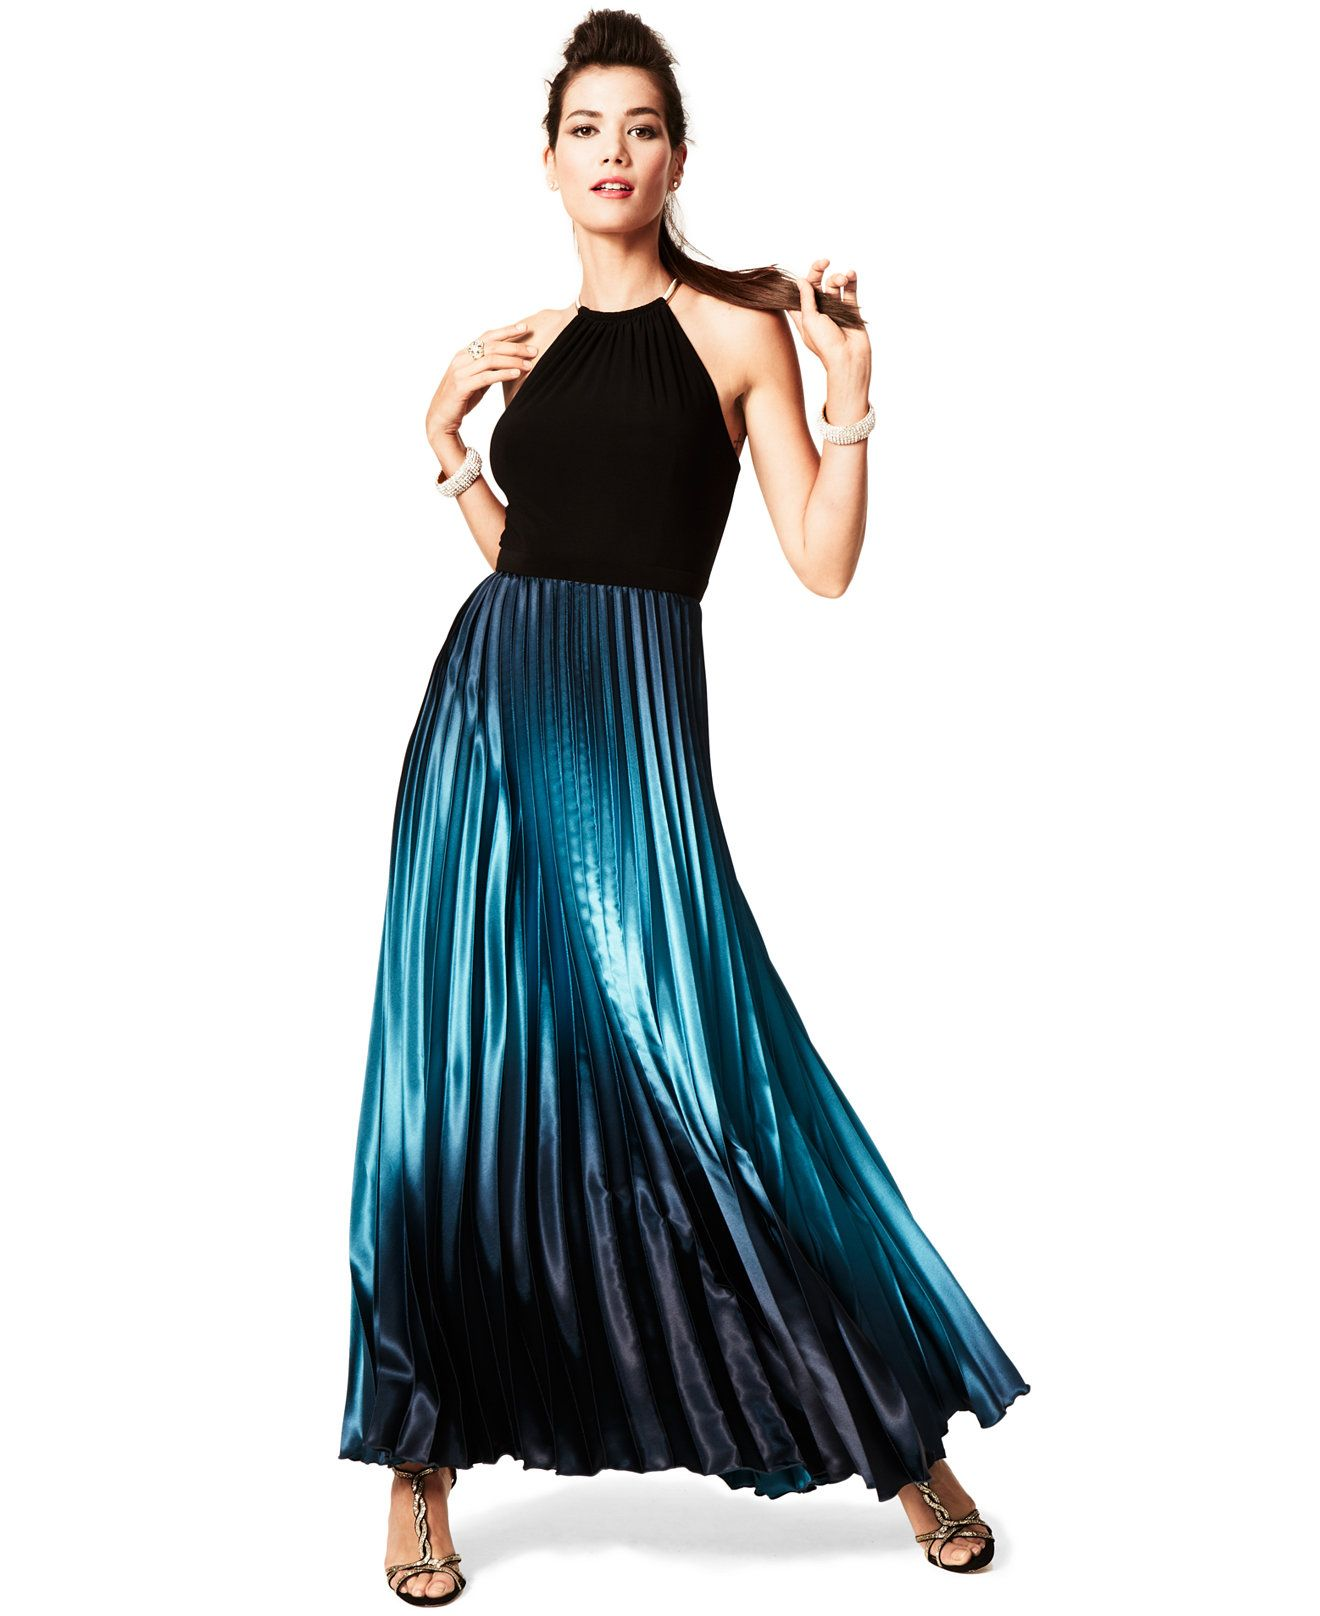 e991ceb0231 Xscape Sleeveless Ombre Halter Gown - Dresses - Women - Macy s ...